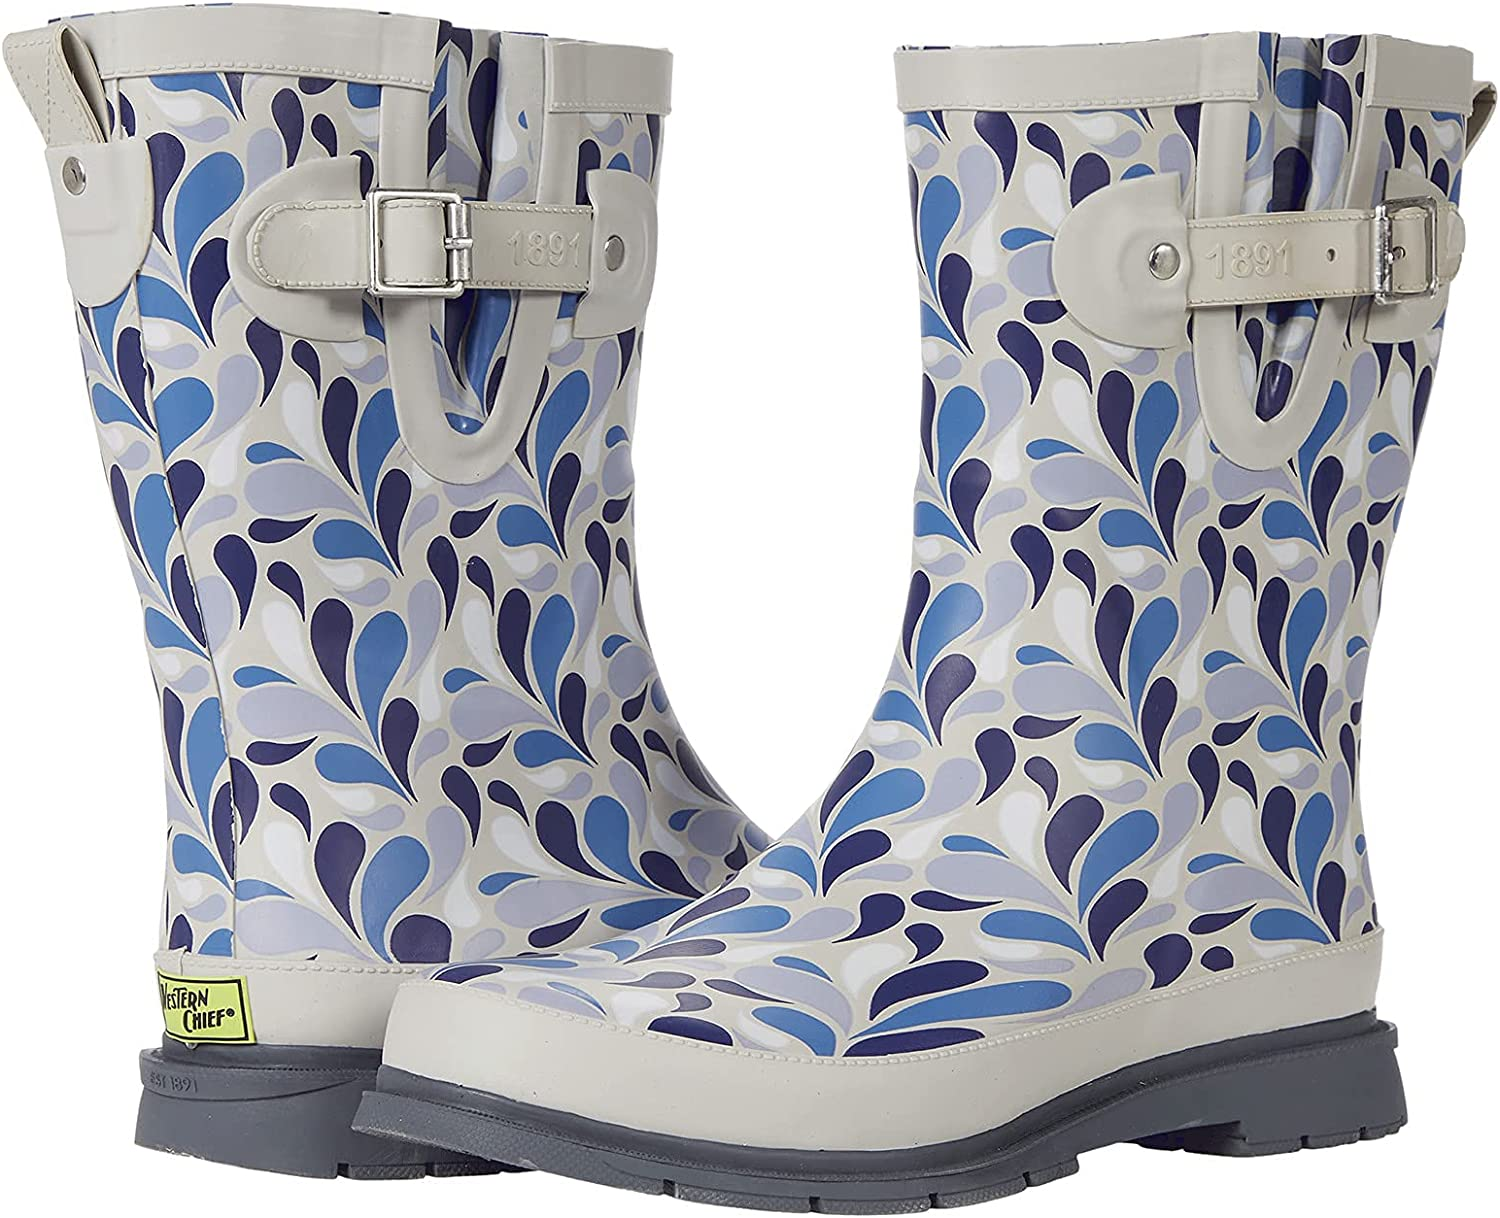 Western Chief Mid Height Rain Boots